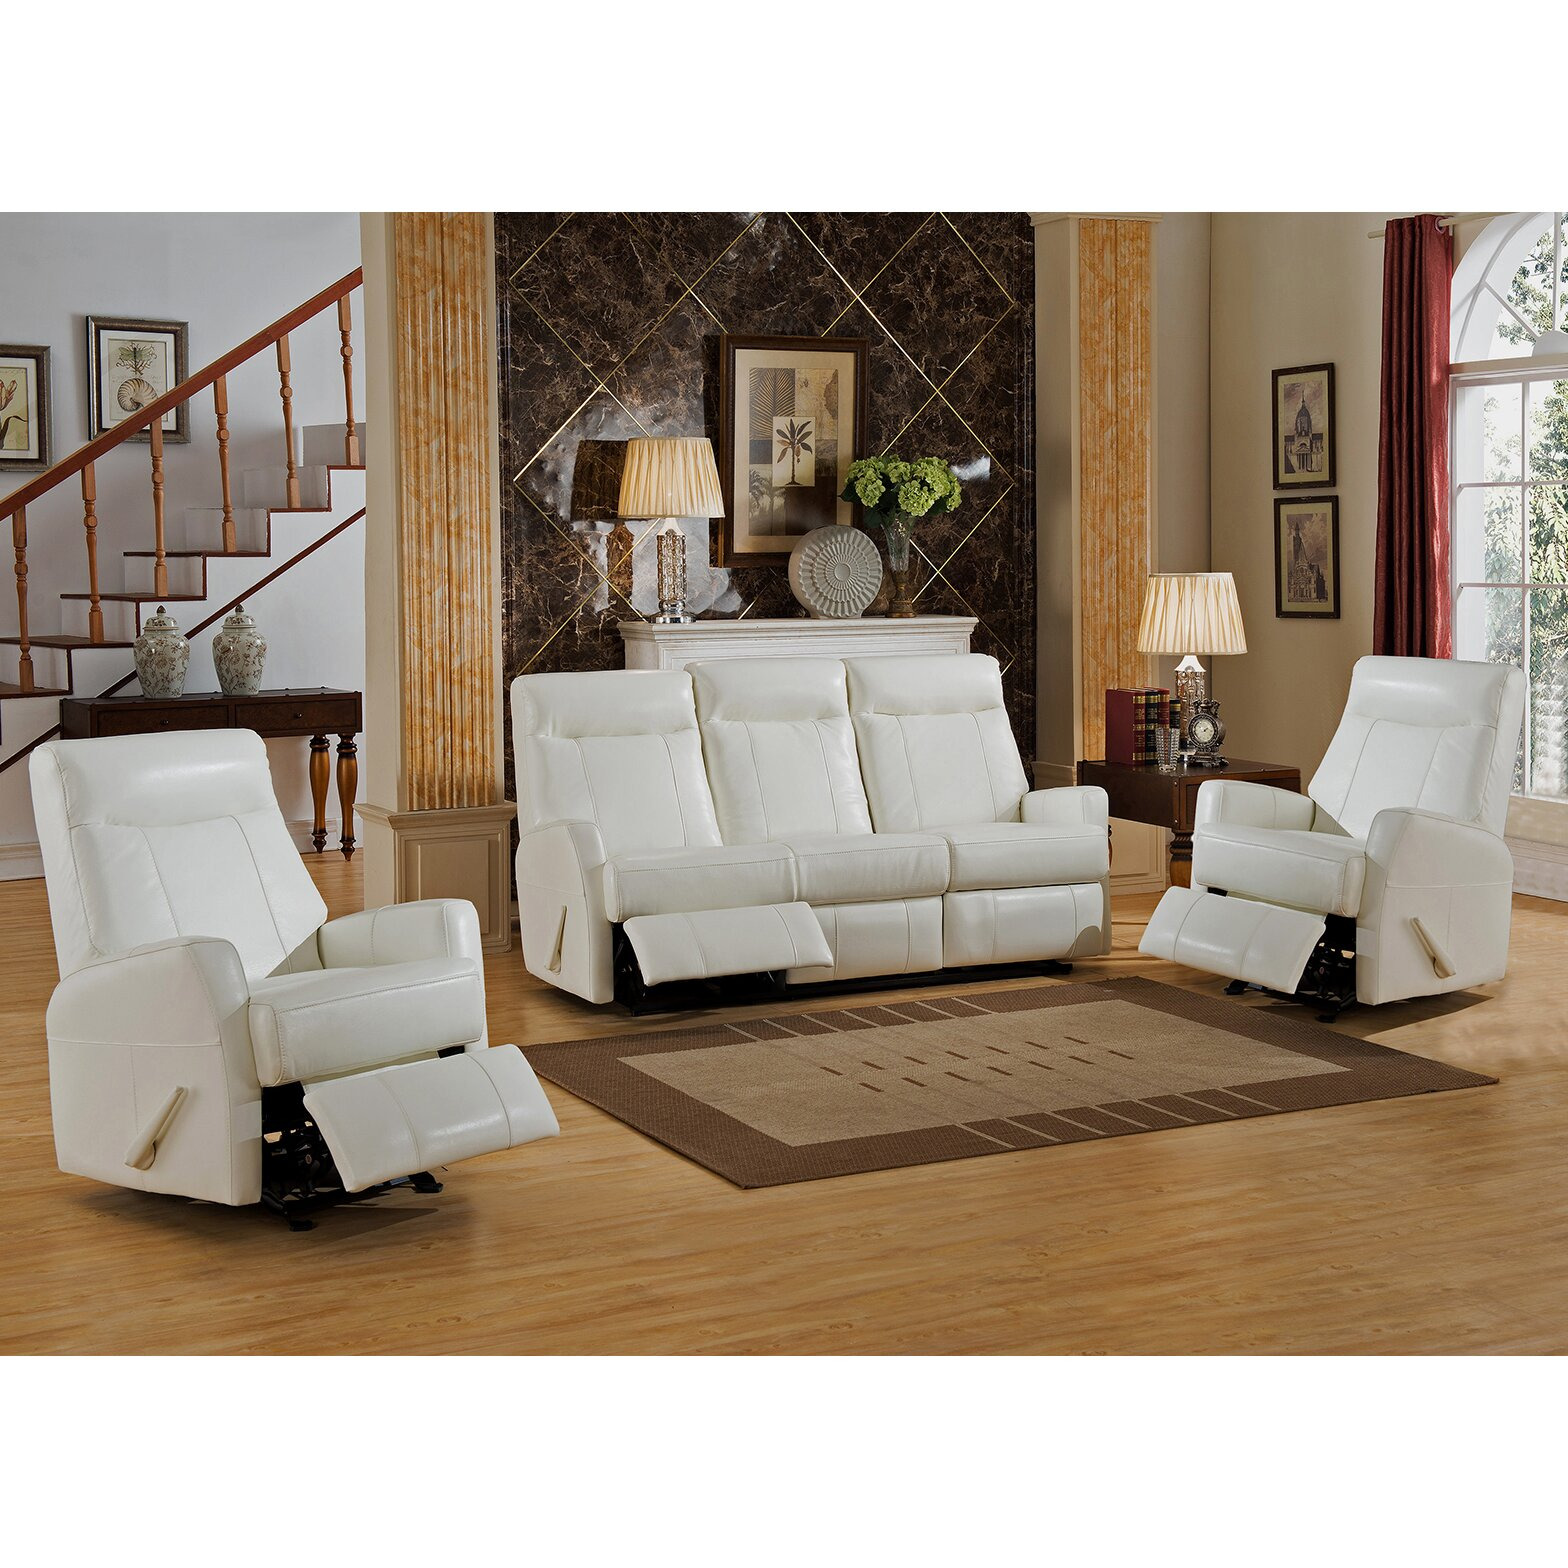 Amax toledo 3 piece leather living room set wayfair Living room furniture toledo ohio